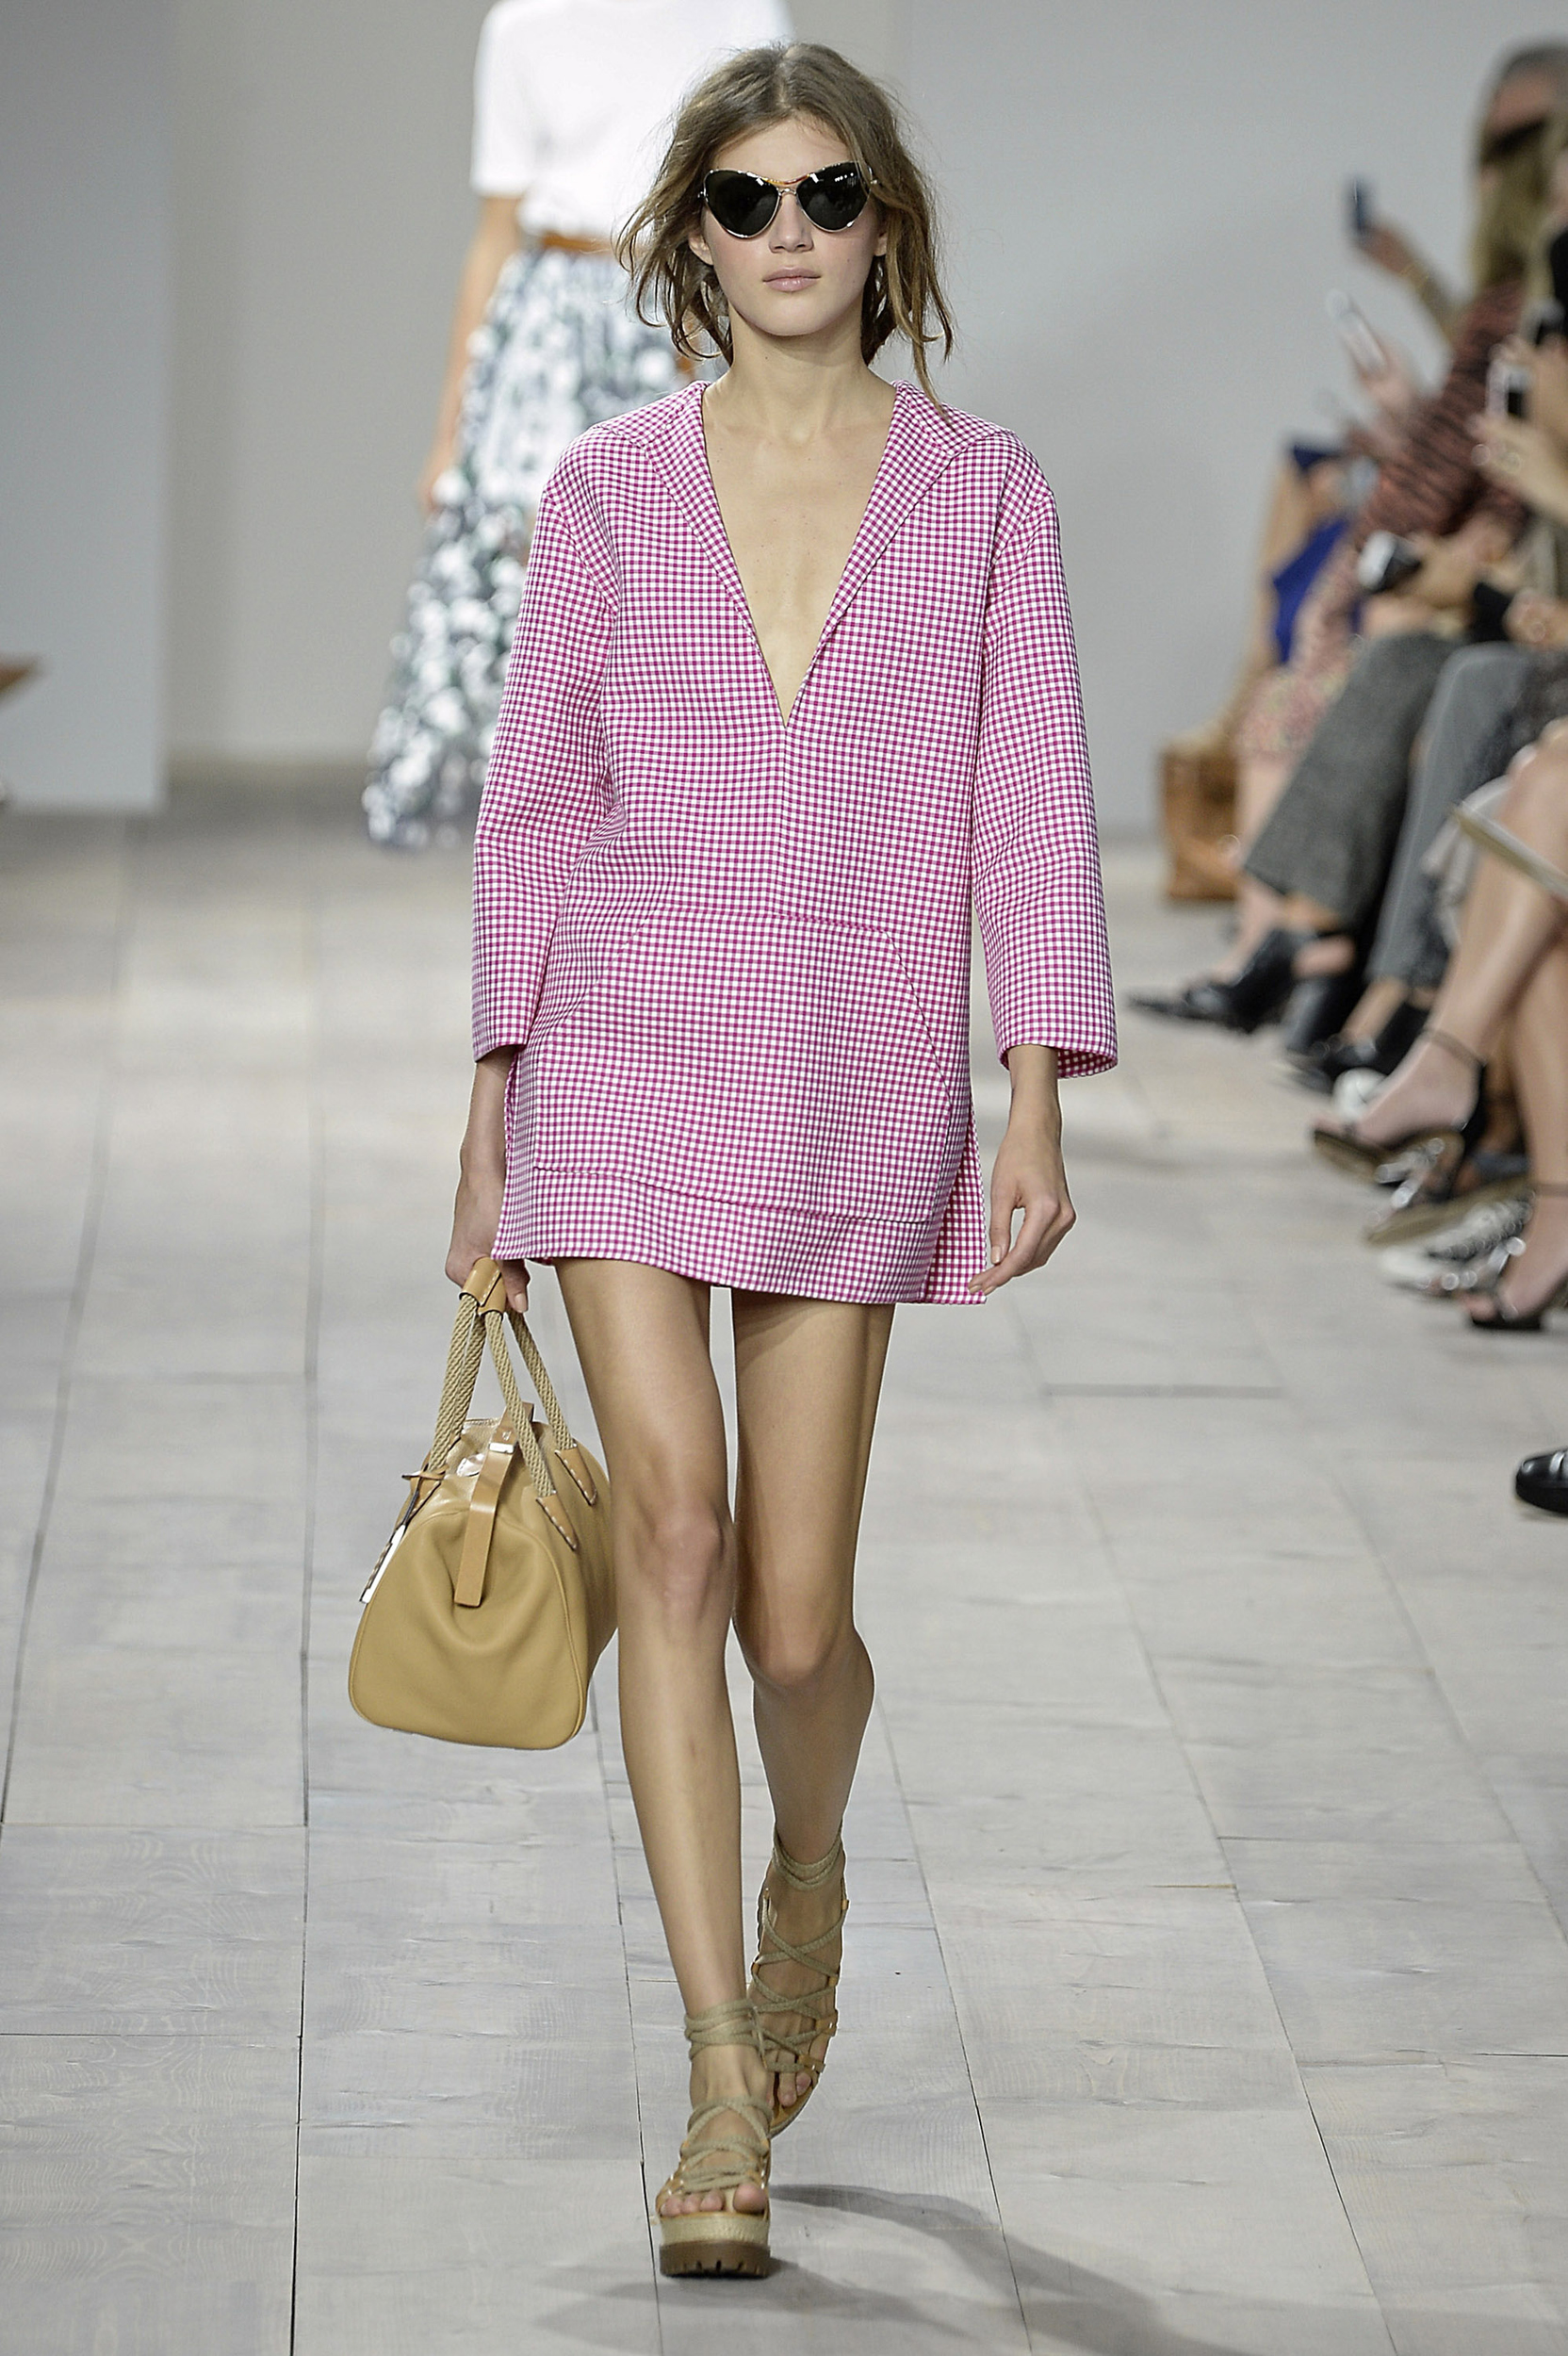 michael-kors-runway-rtw-spring-2015-new-york-fashion-week